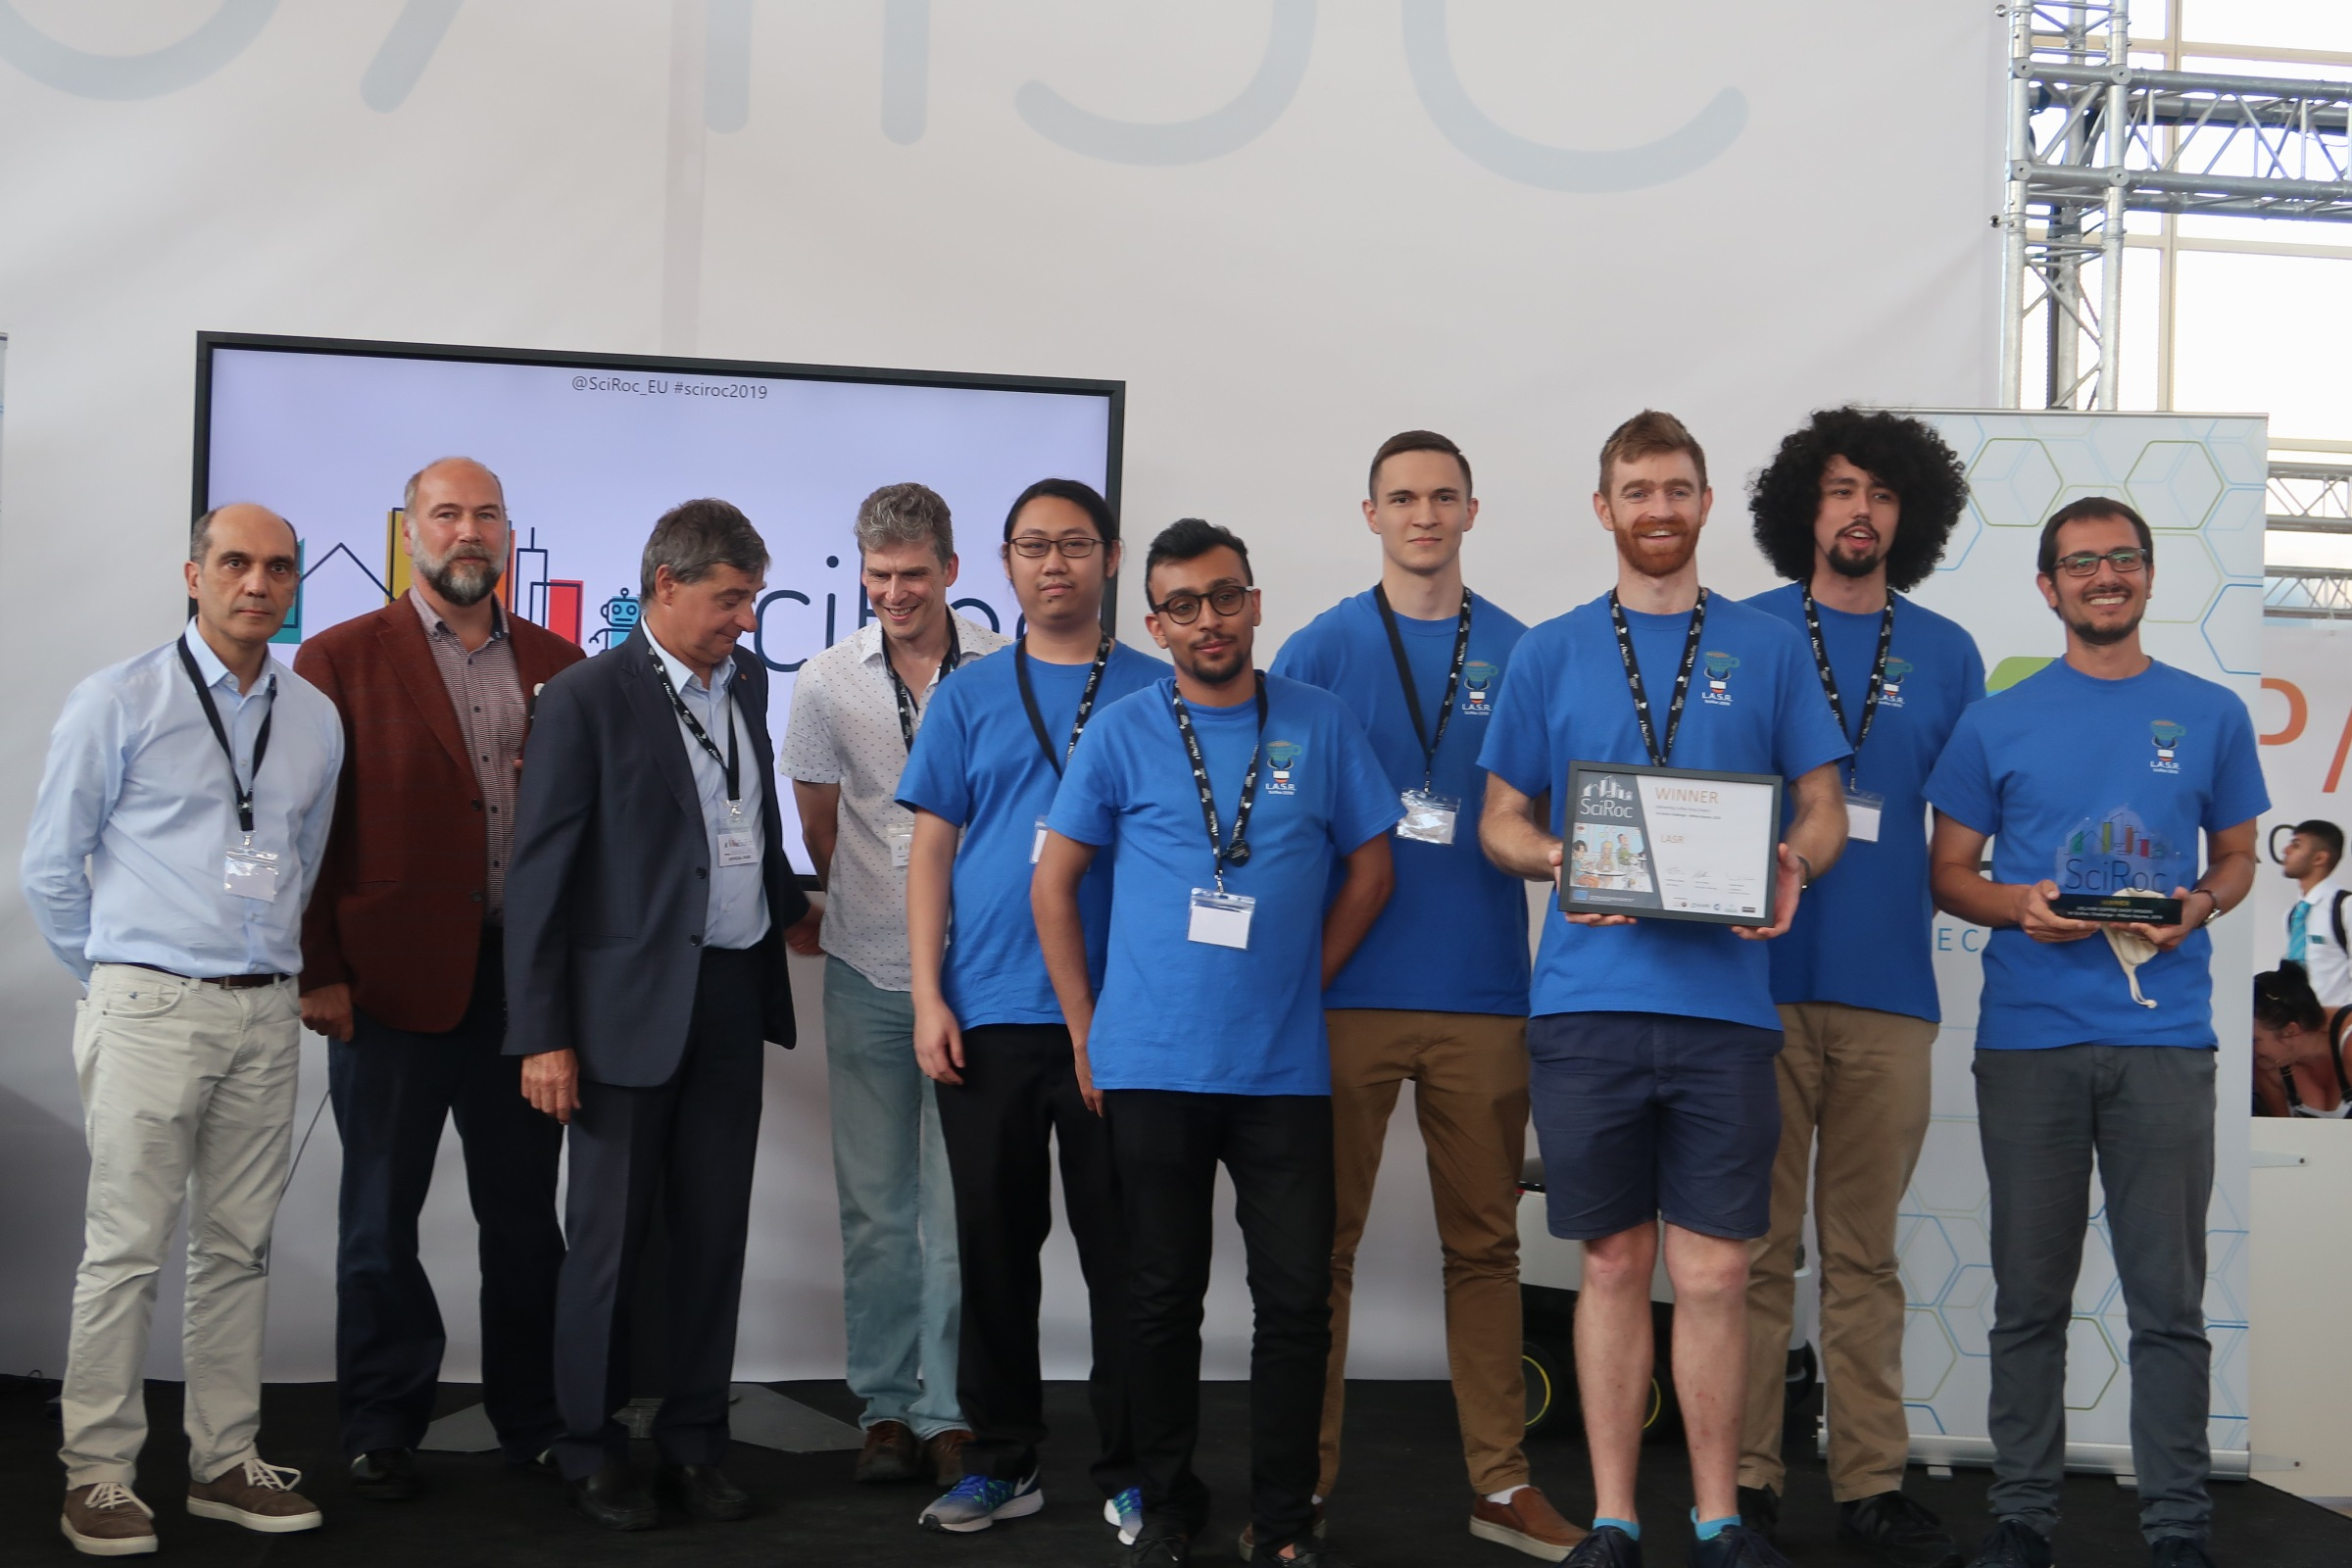 Congratulations to the winners of the 2019 SciRoc Challenge!